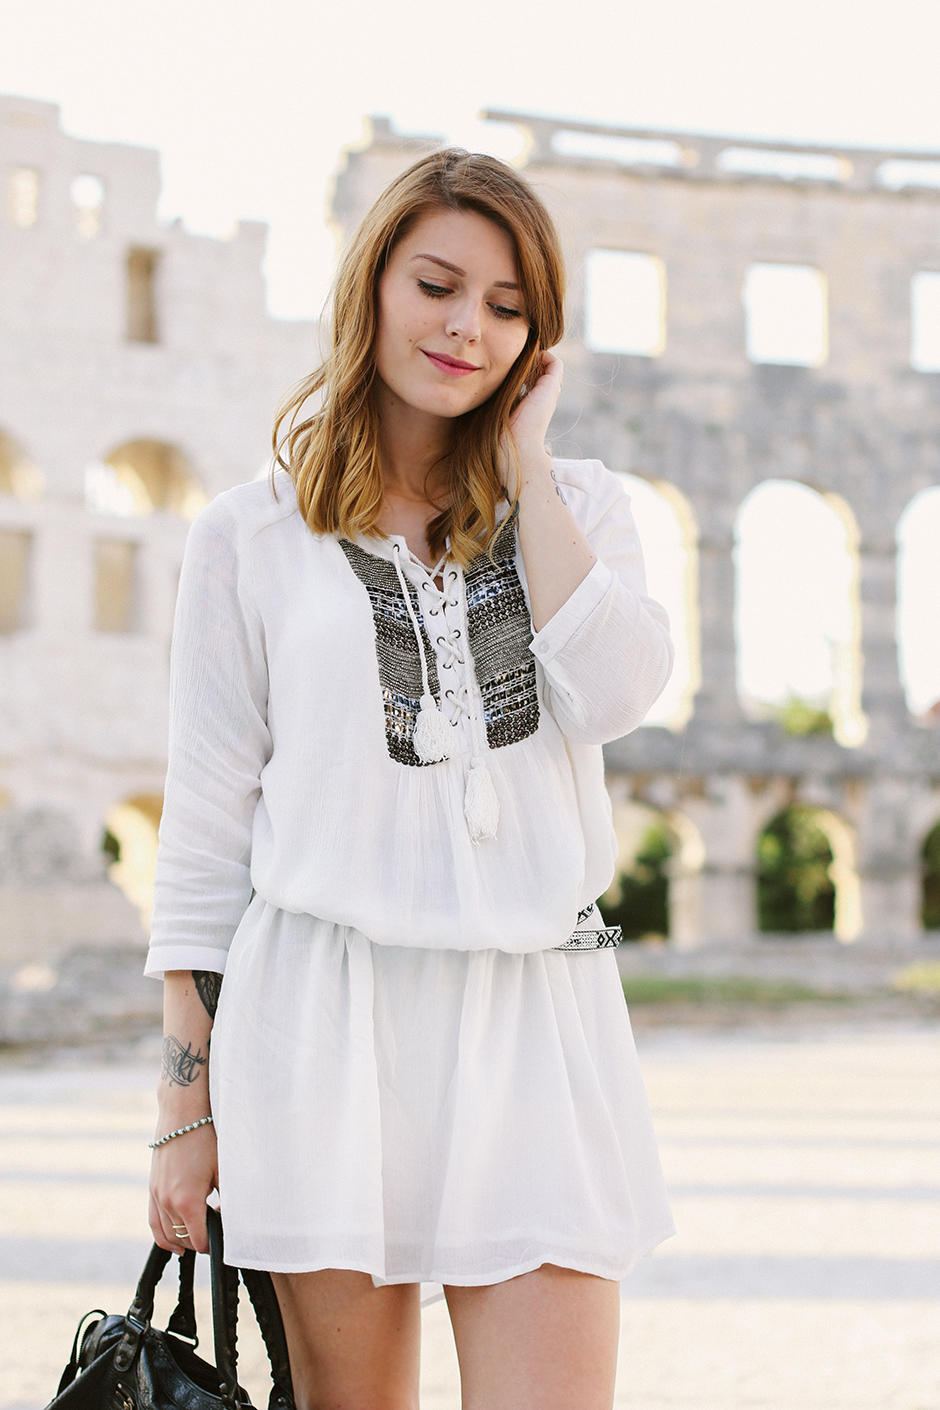 White_Dress_Amphitheater_Pula_2